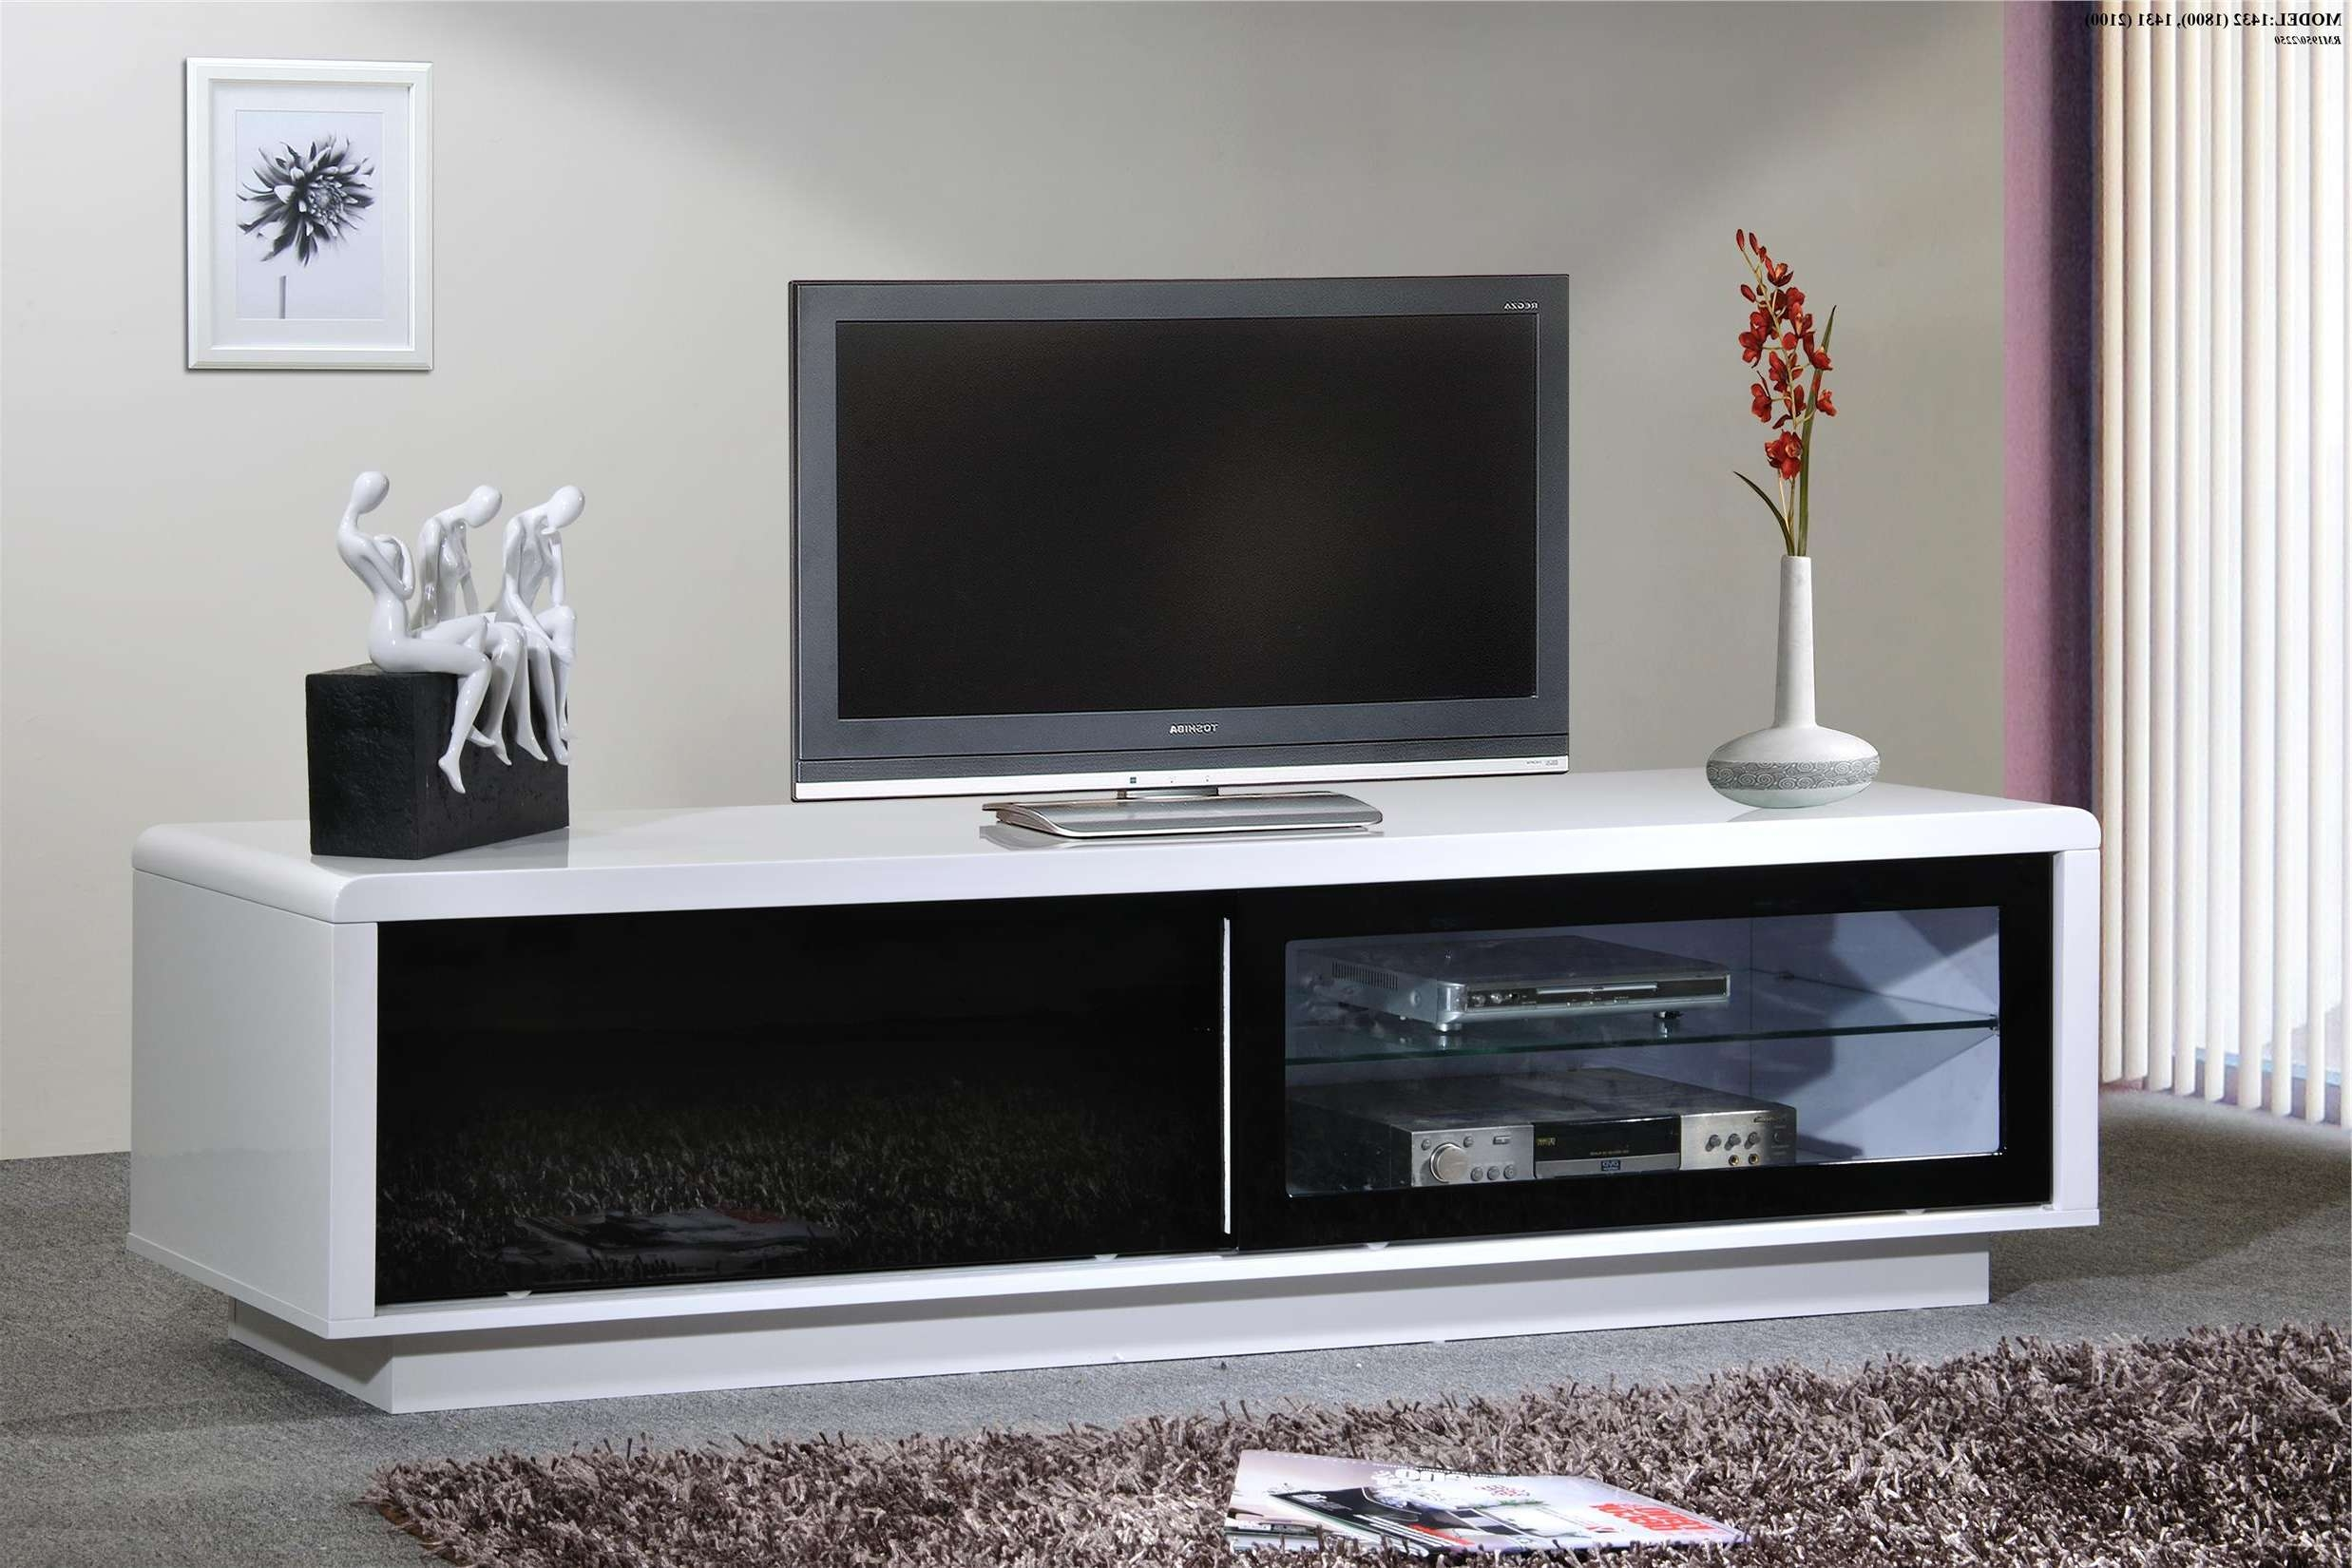 High Gloss Tv Cabinet (1432 Black) (end 6/27/2016 1:15 Pm) Inside High Gloss Tv Cabinets (View 13 of 20)